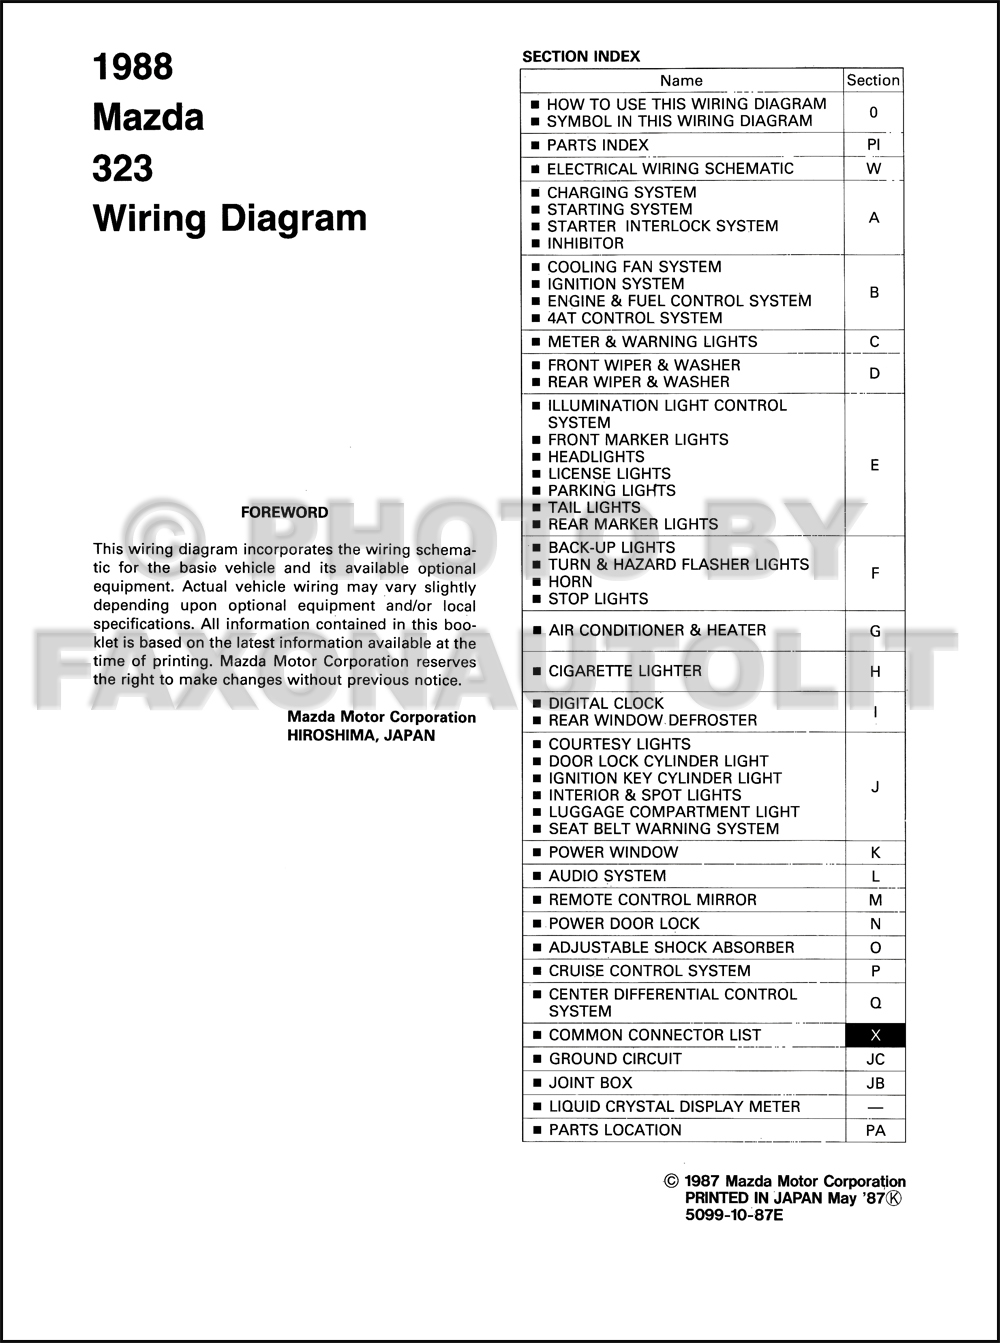 Fancy Mazda 323 Wiring Diagram Crest - Best Images for wiring ...